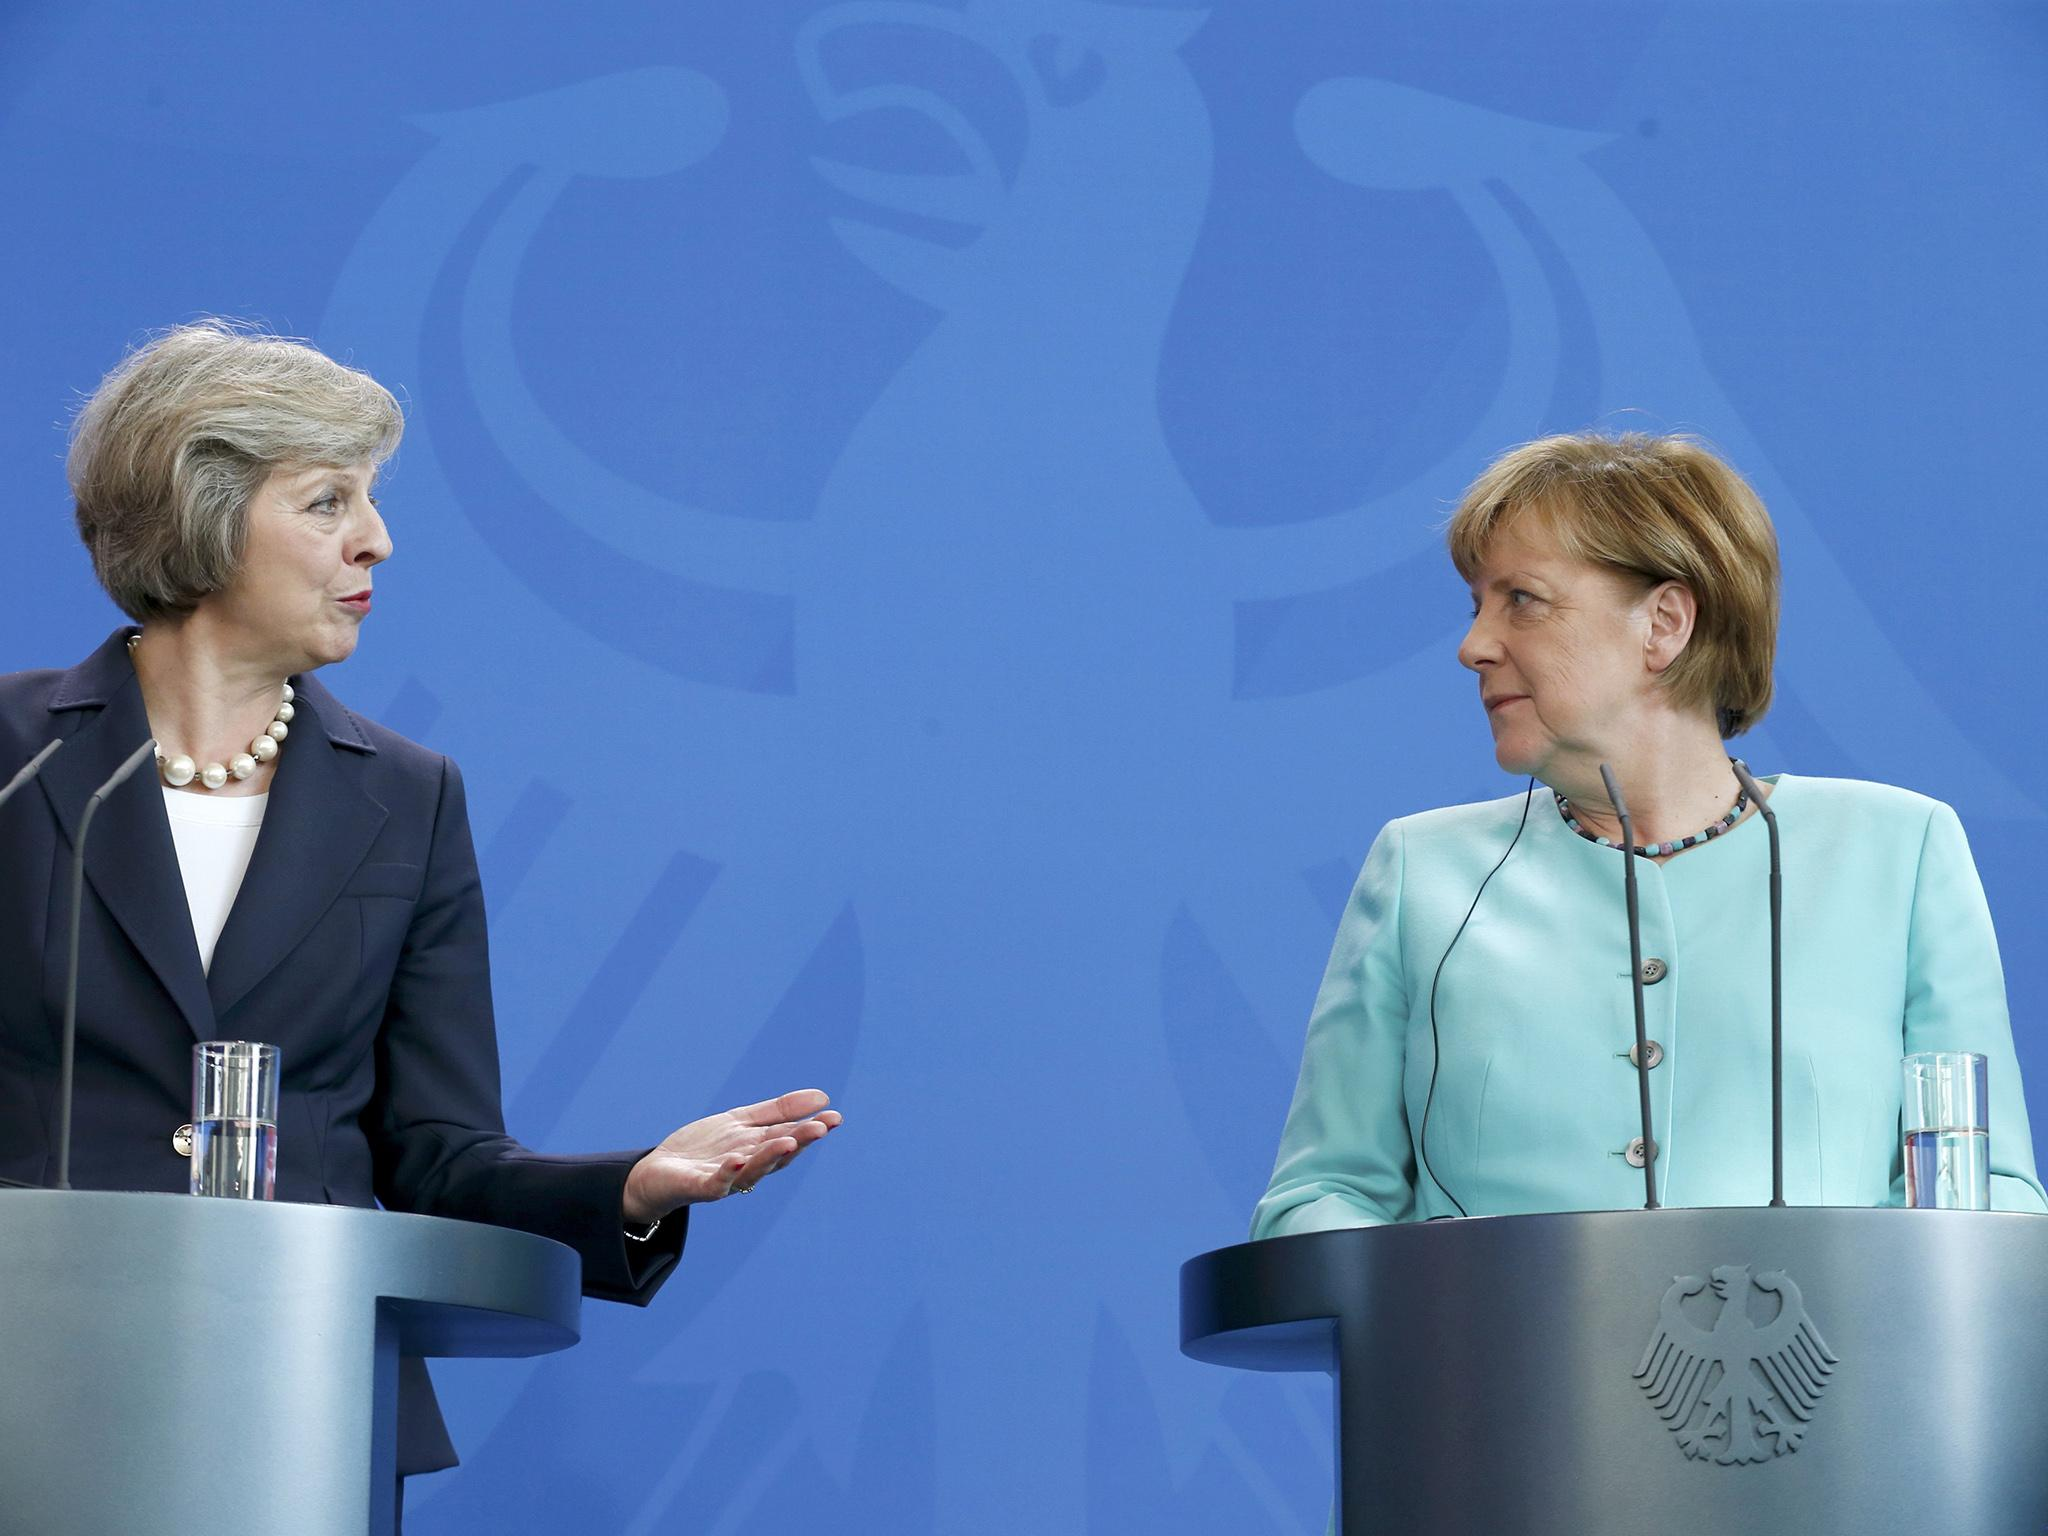 Brexit talks will begin in 'next couple of weeks', Theresa May and Angela Merkel agree